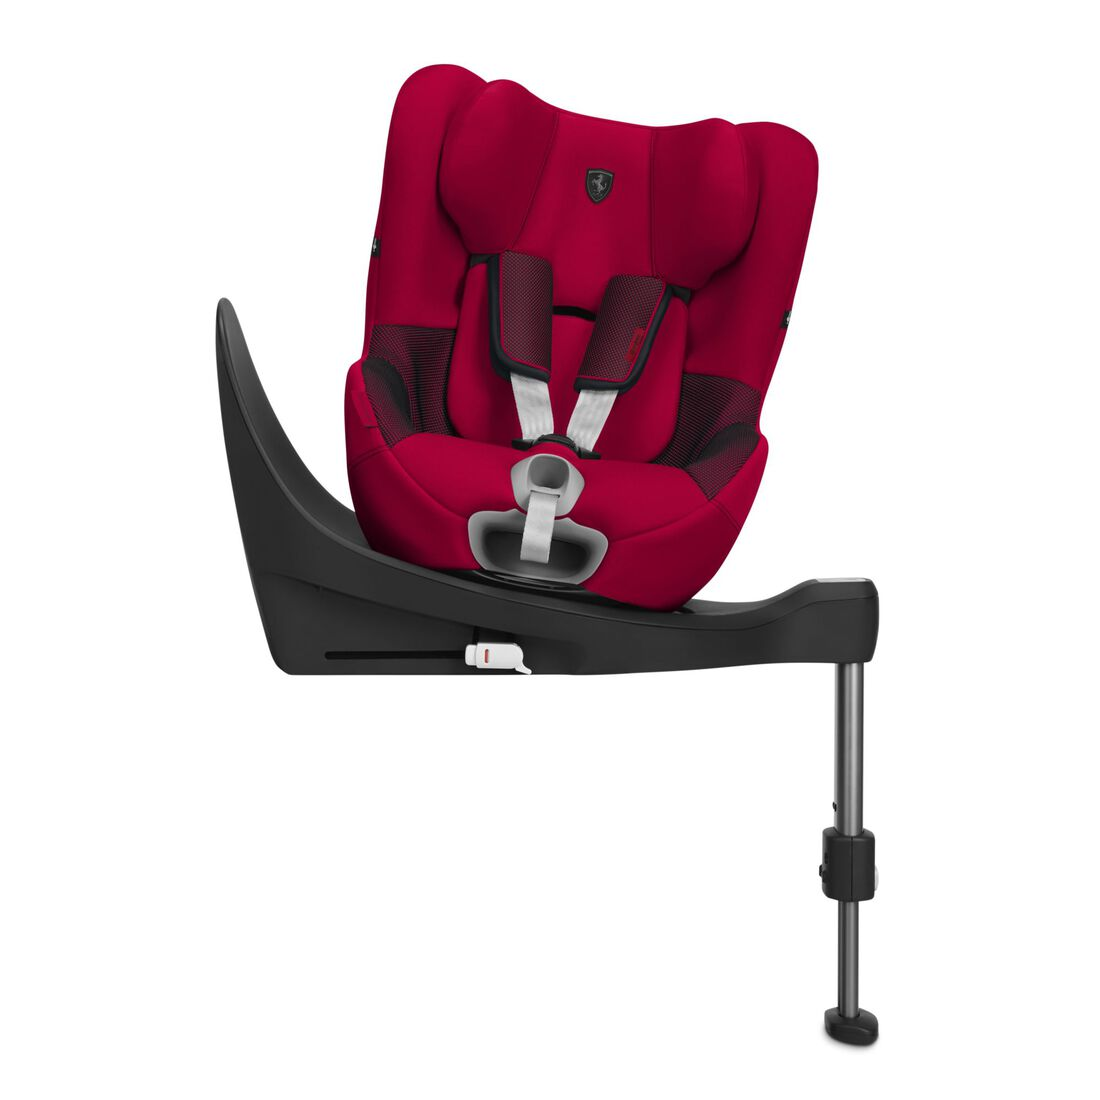 CYBEX Sirona S i-Size - Ferrari Racing Red in Ferrari Racing Red large image number 2